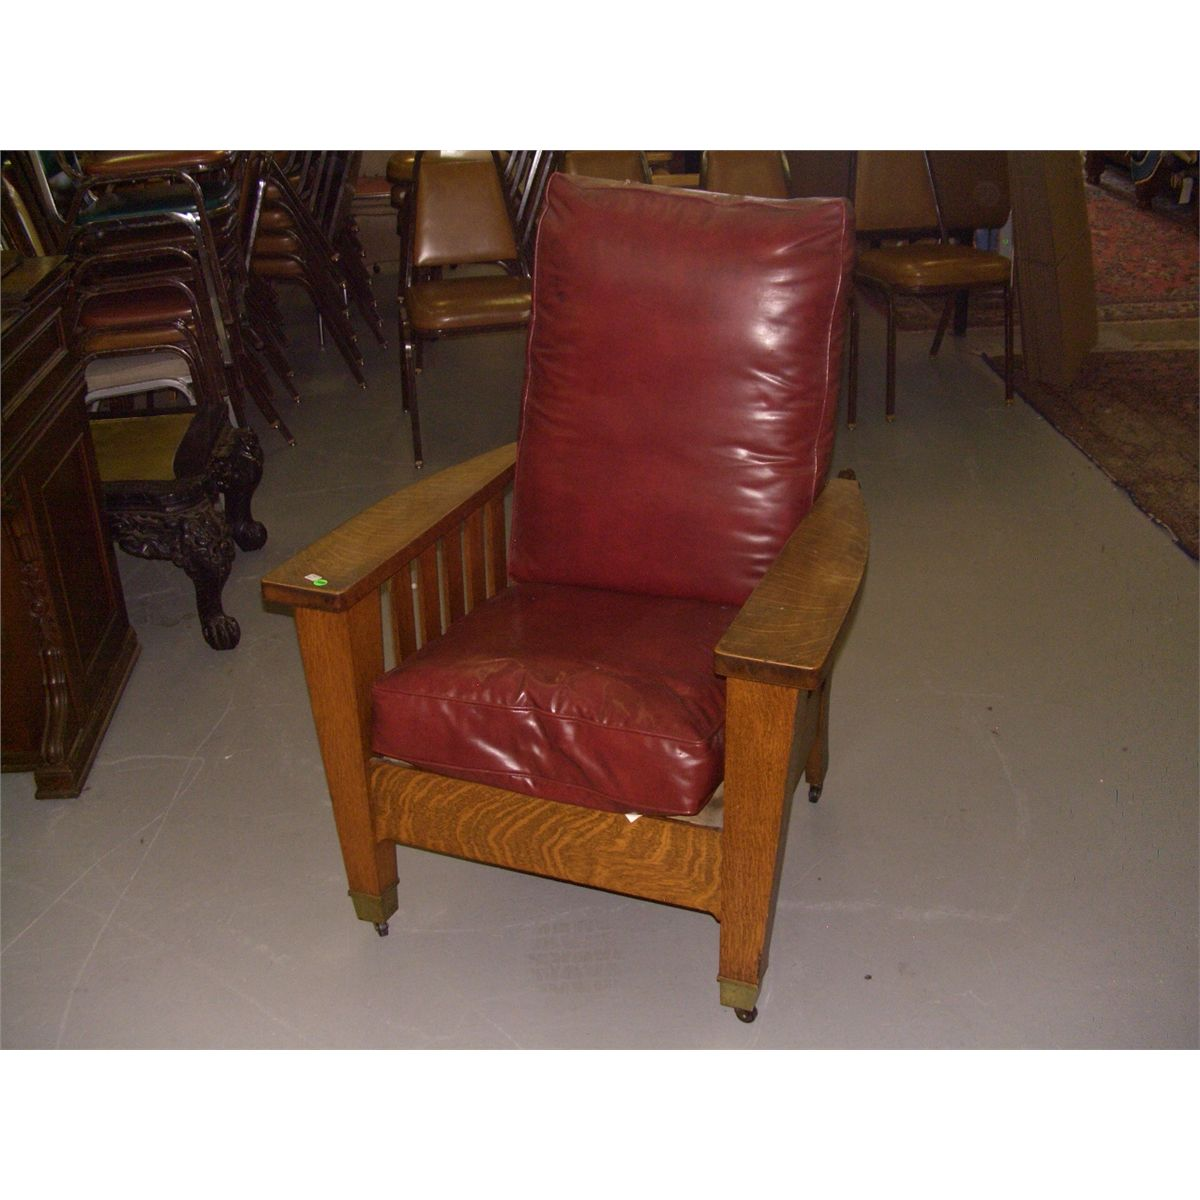 Mission chair leather - Original Oak Arts And Crafts Mission Morris Chair With Small Piece Label Br Barber Brothers Ssr